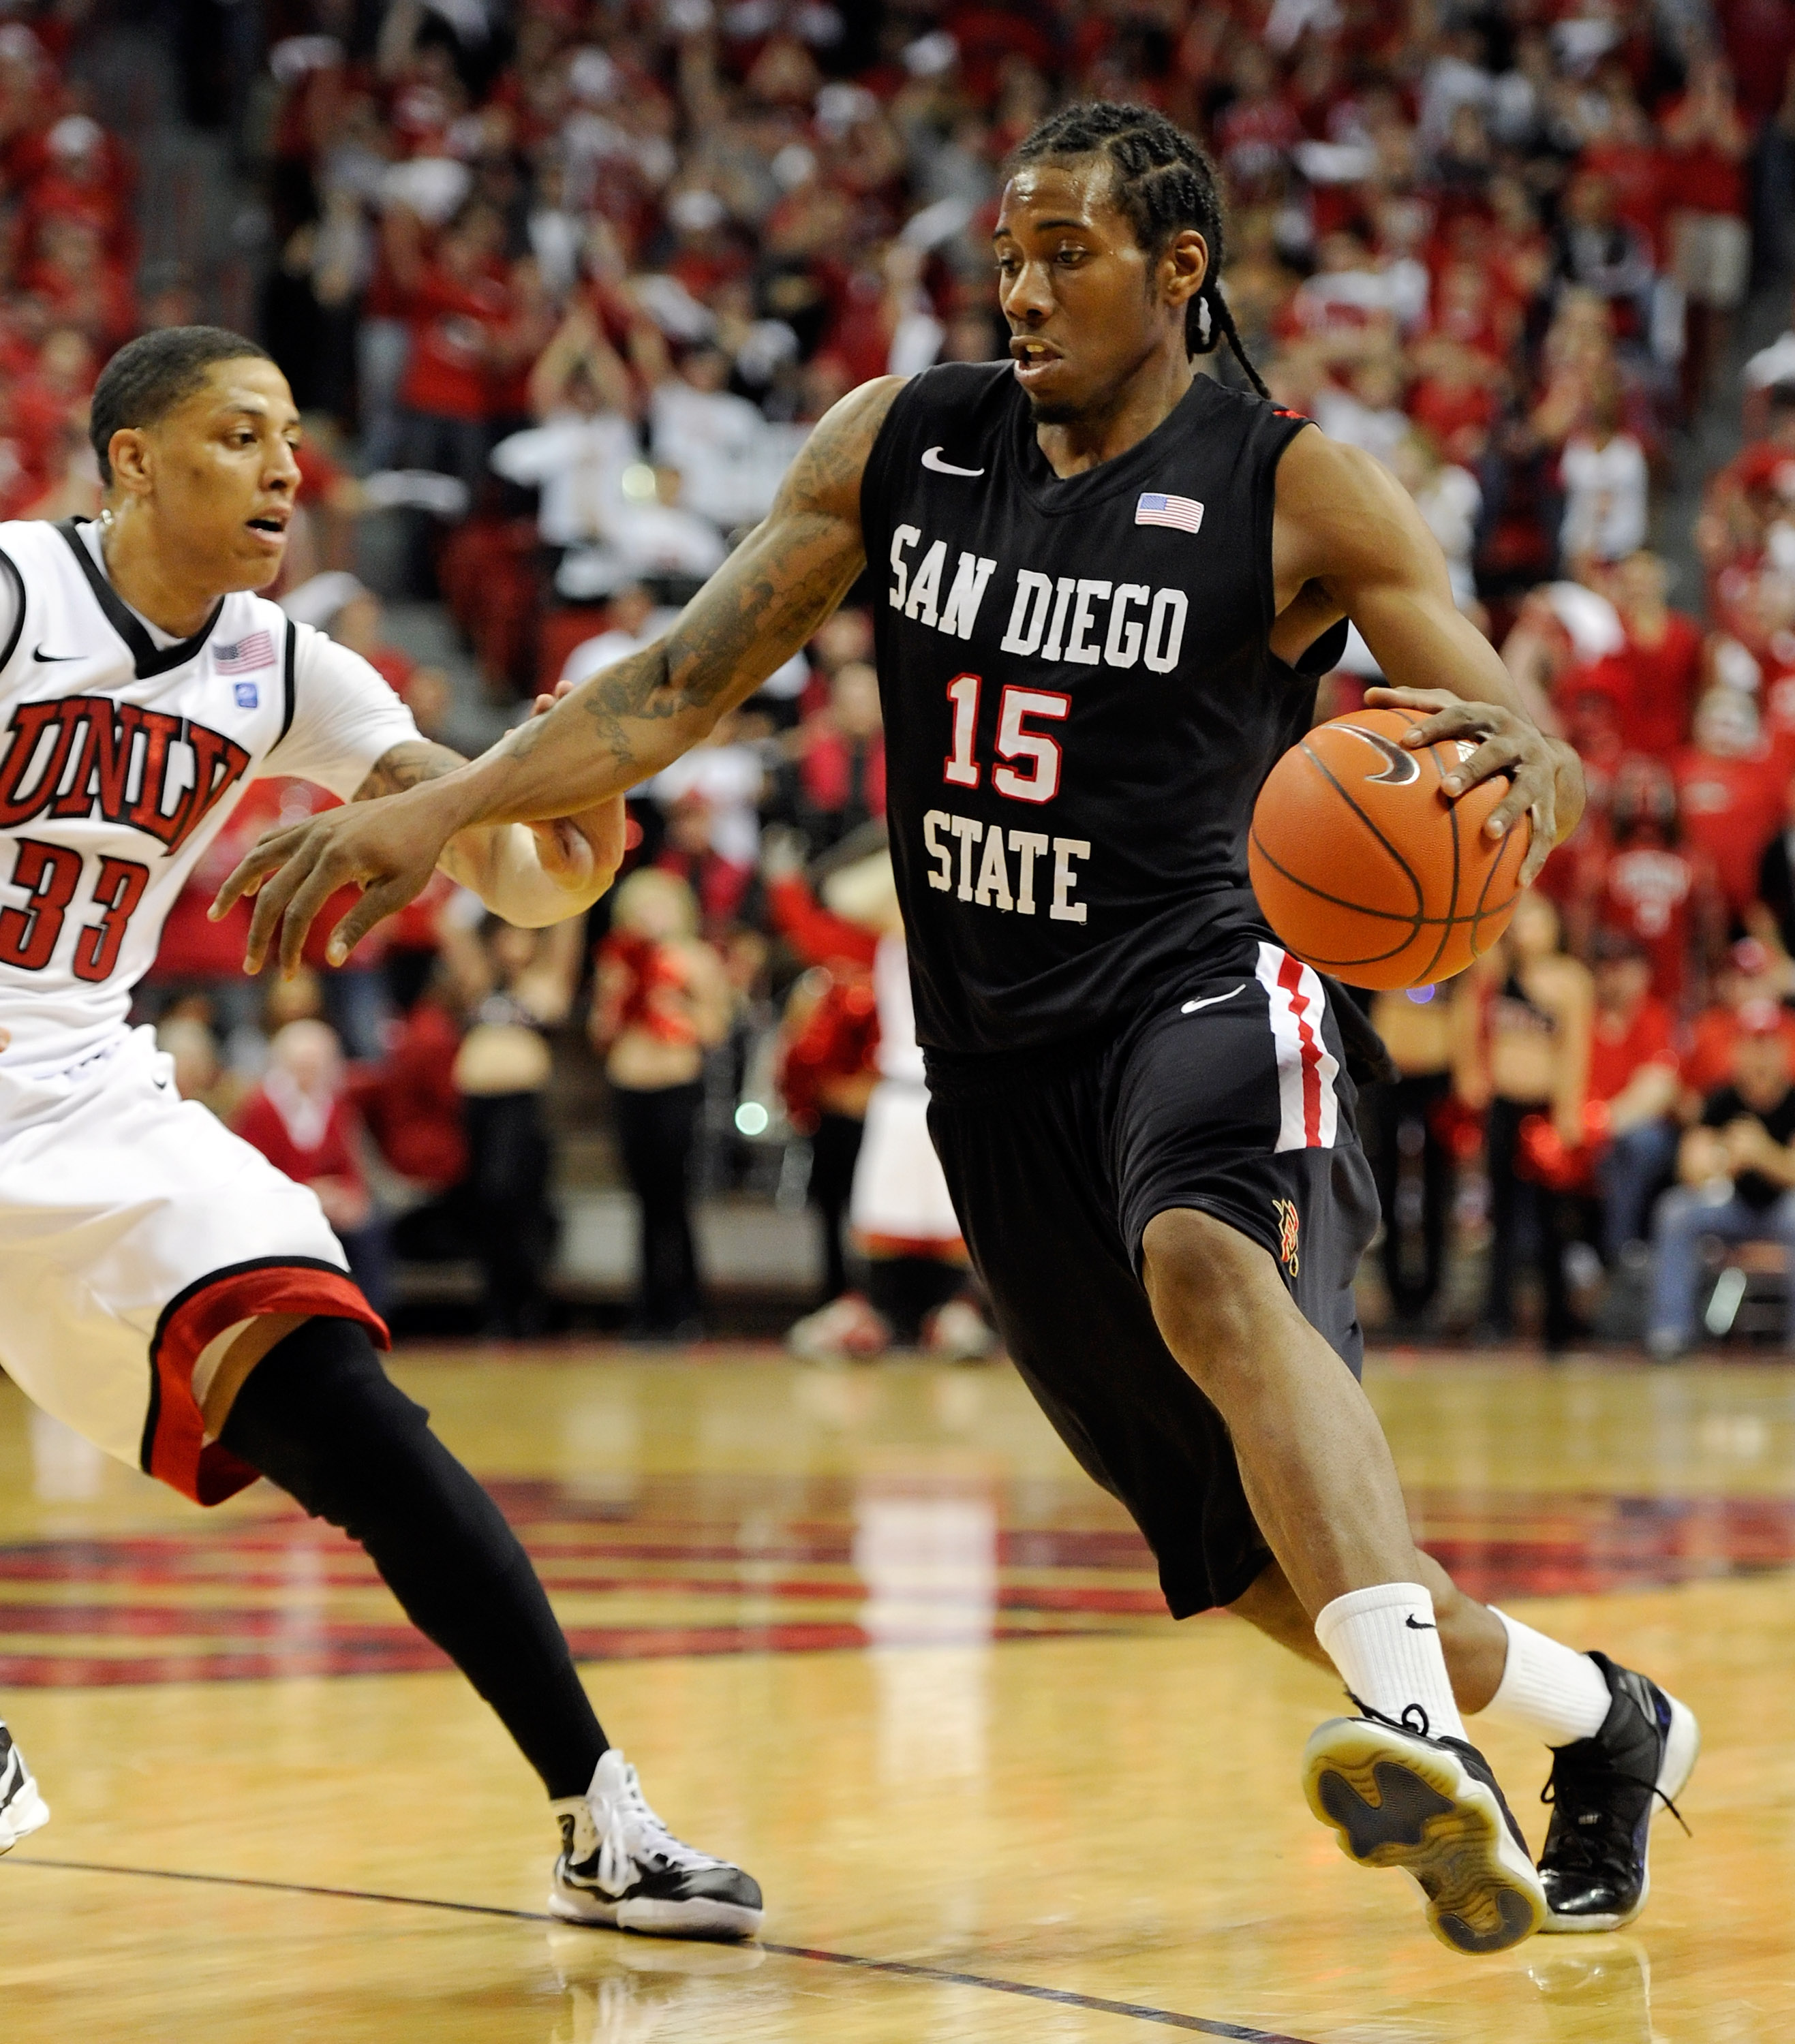 LAS VEGAS, NV - FEBRUARY 12:  Kawhi Leonard #15 of the San Diego State Aztecs drives against Tre'Von Willis #33 of the UNLV Rebels during their game at the Thomas & Mack Center February 12, 2011 in Las Vegas, Nevada. San Diego State won 63-57.  (Photo by